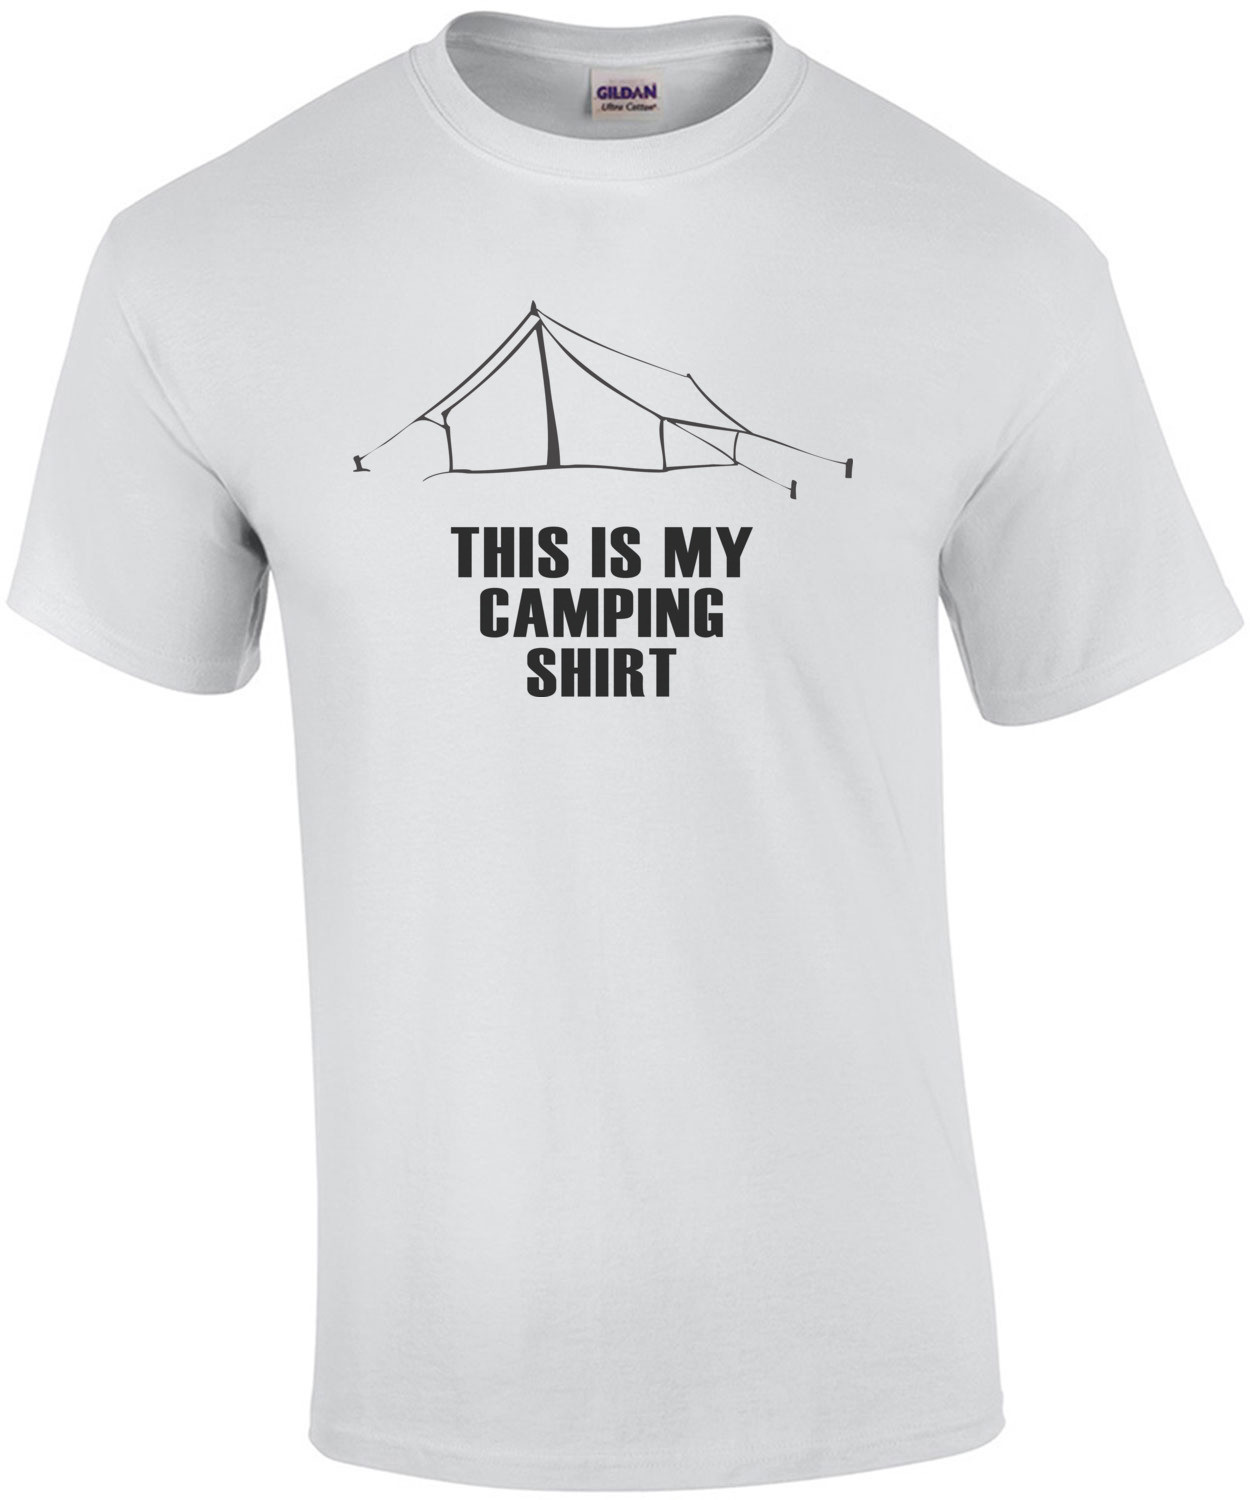 This is my camping shirt - camping t-shirt